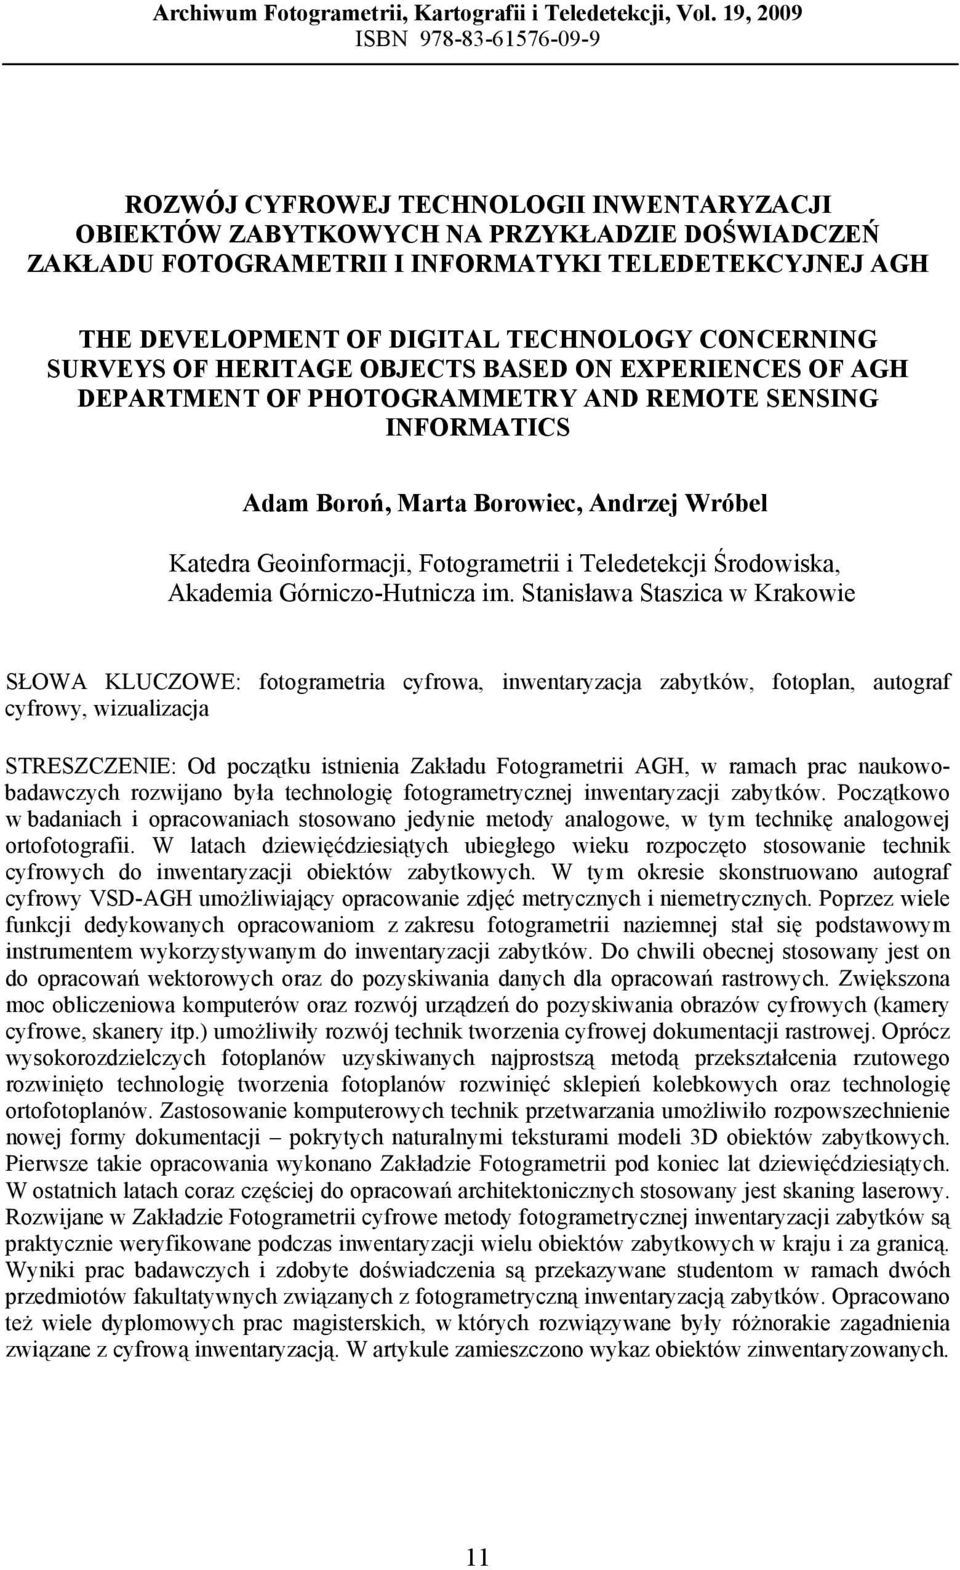 DIGITAL TECHNOLOGY CONCERNING SURVEYS OF HERITAGE OBJECTS BASED ON EXPERIENCES OF AGH DEPARTMENT OF PHOTOGRAMMETRY AND REMOTE SENSING INFORMATICS Adam, Marta Borowiec, Andrzej Wróbel Katedra